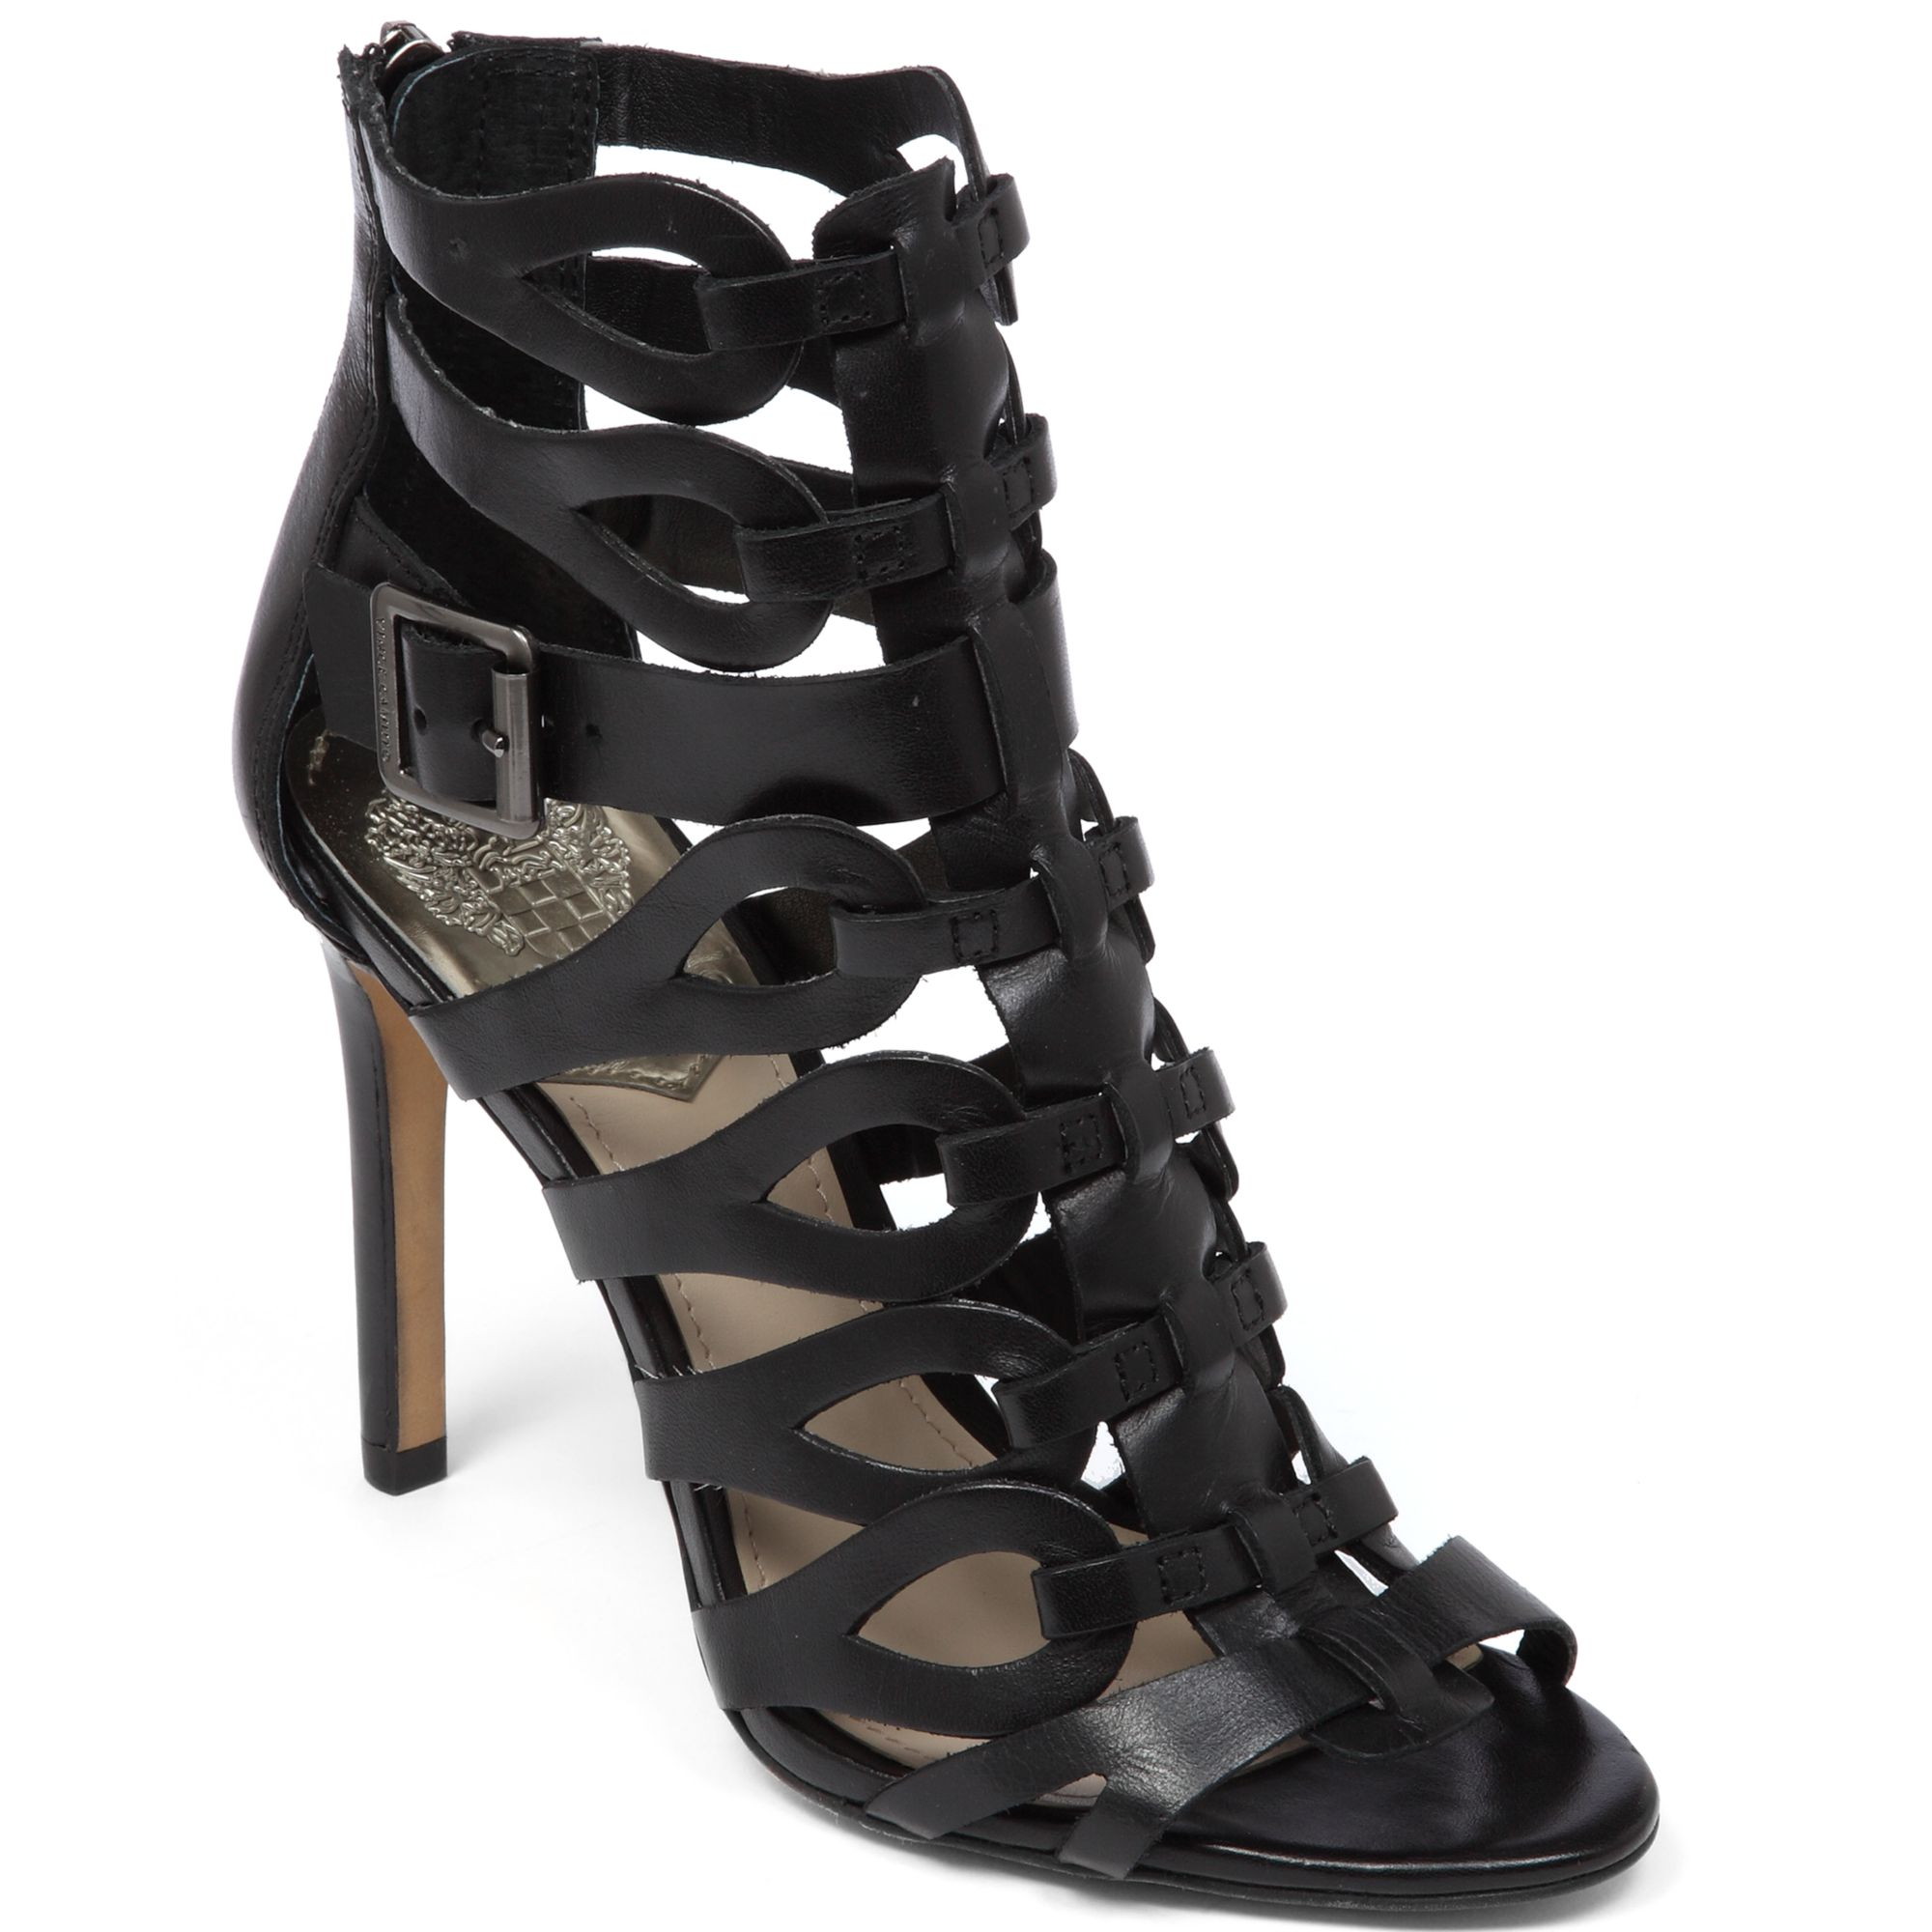 Vince Camuto Ombre Gladiator High Heel Sandals In Black Lyst